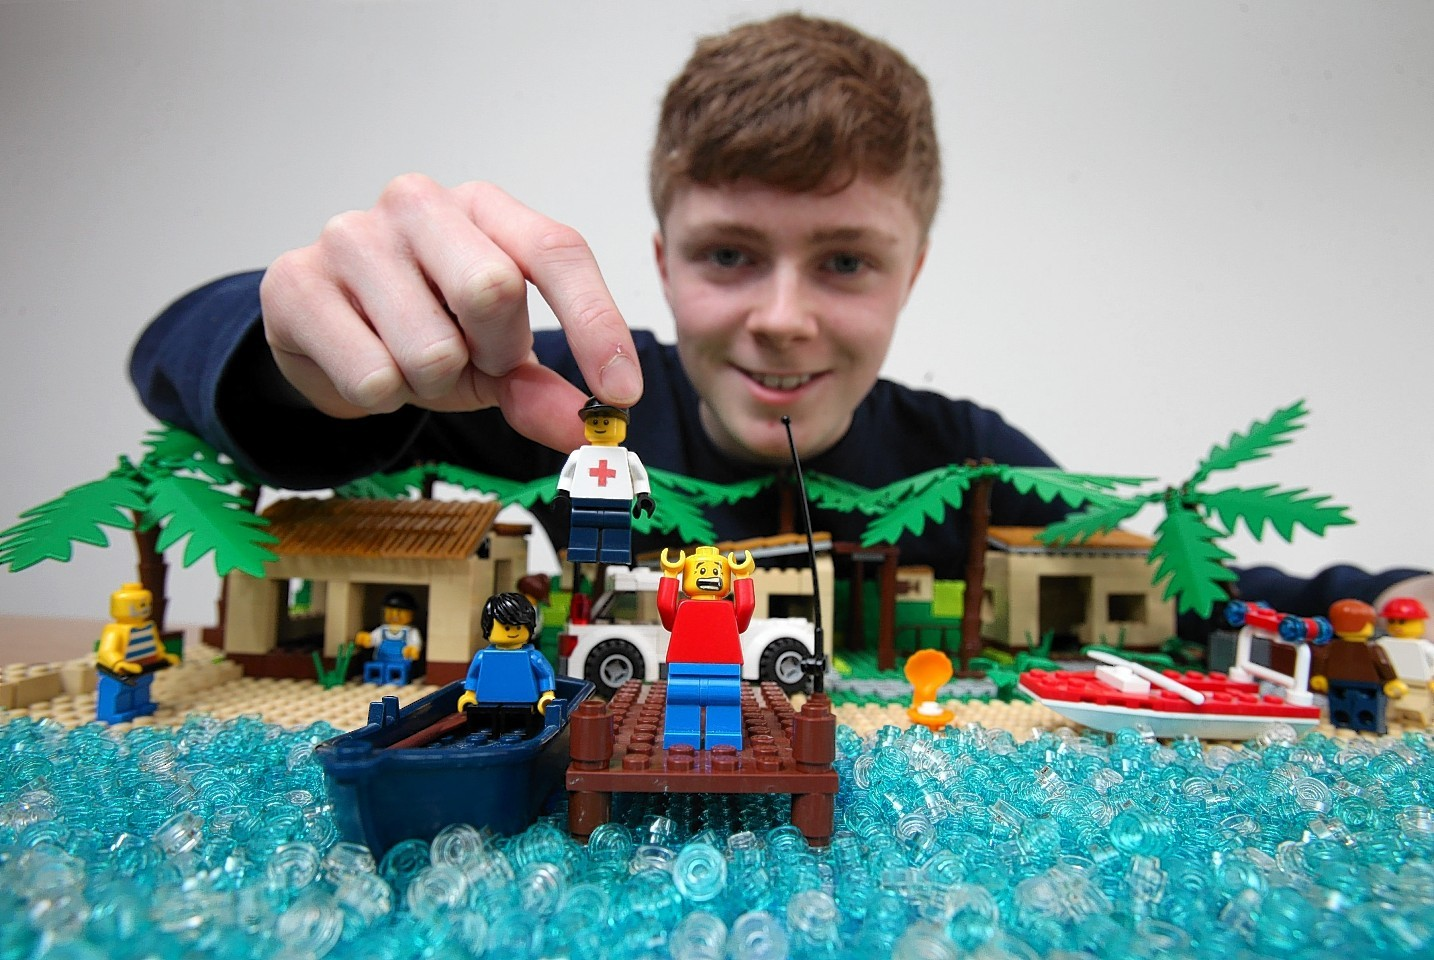 Morgan Spence, 15, from Kilbarchan, Renfrewshire, spent three weeks painstakingly putting together a LEGO stop-motion video of scenes from Hollywood classics